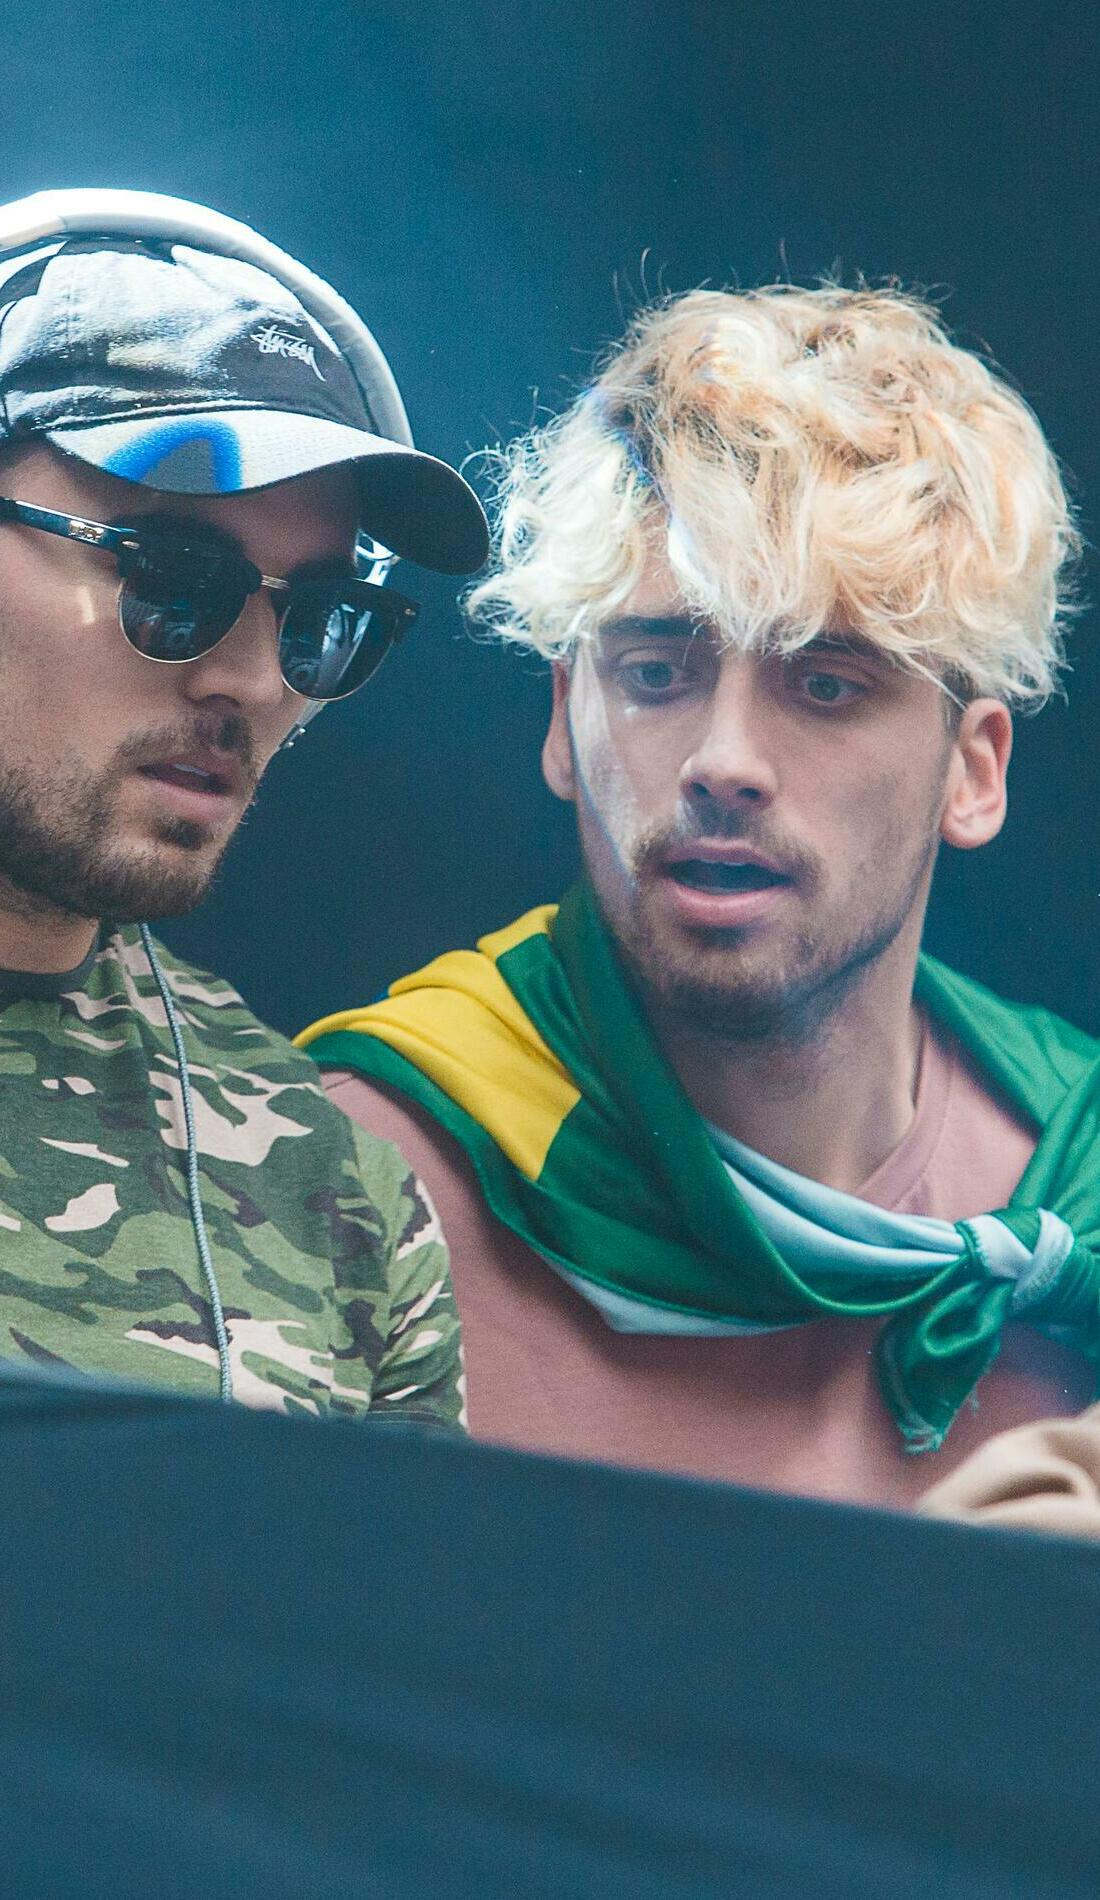 A Cheat Codes live event